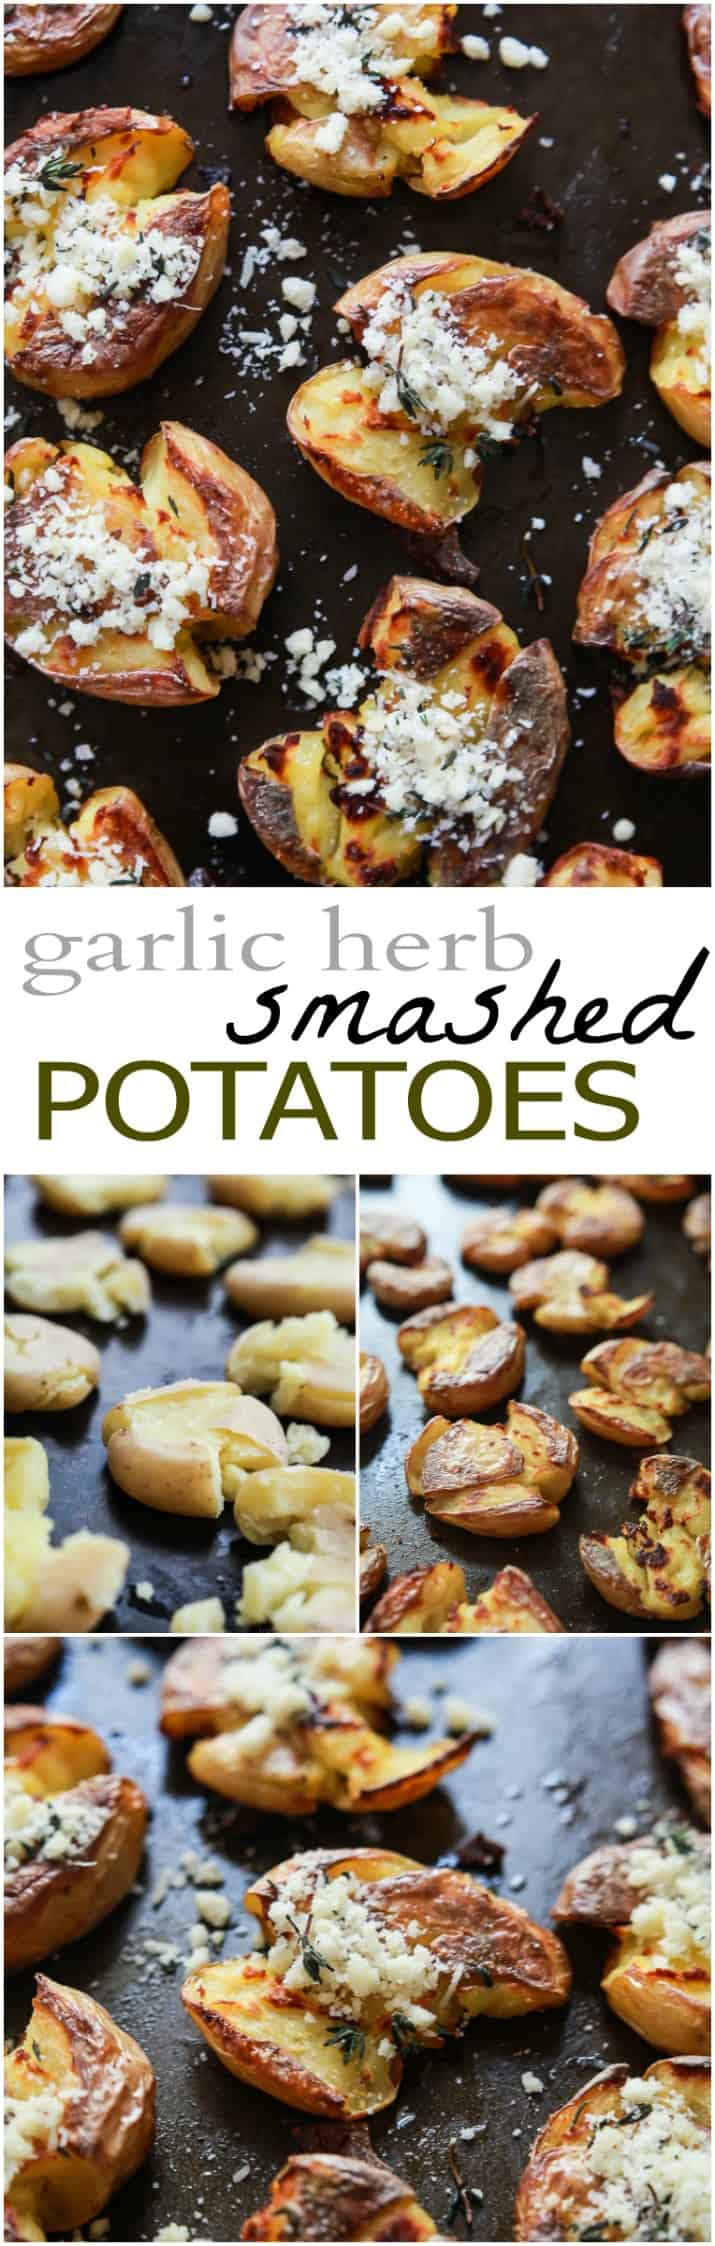 Garlic Herb Smashed Potatoes - these potatoes are crispy on the outside while soft on the inside and then filled with fresh garlic herb flavor! A must this holiday season! | joyfulhealthyeats.com